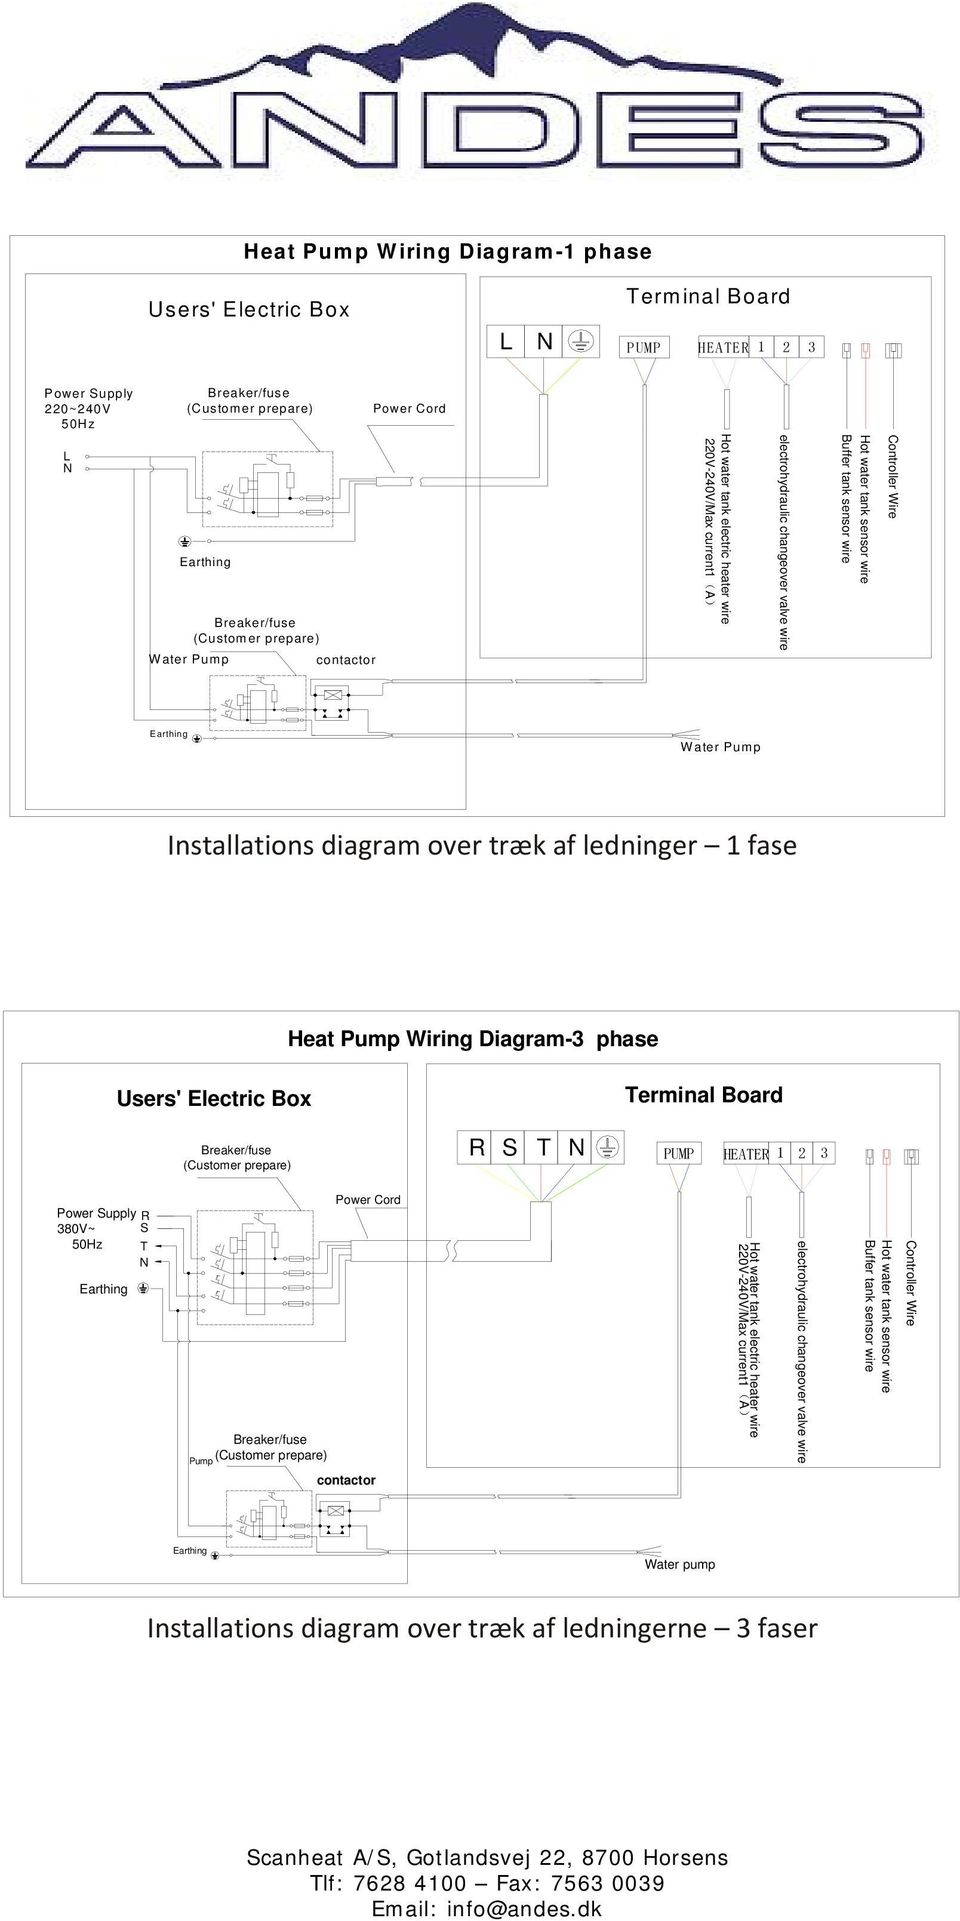 Earthing Water Pump Installations diagram over træk af ledninger 1 fase Heat Pump Wiring Diagram-3 phase Users' Electric Box Terminal Board Breaker/fuse (Customer prepare) R S T N PUMP HEATER 1 2 3